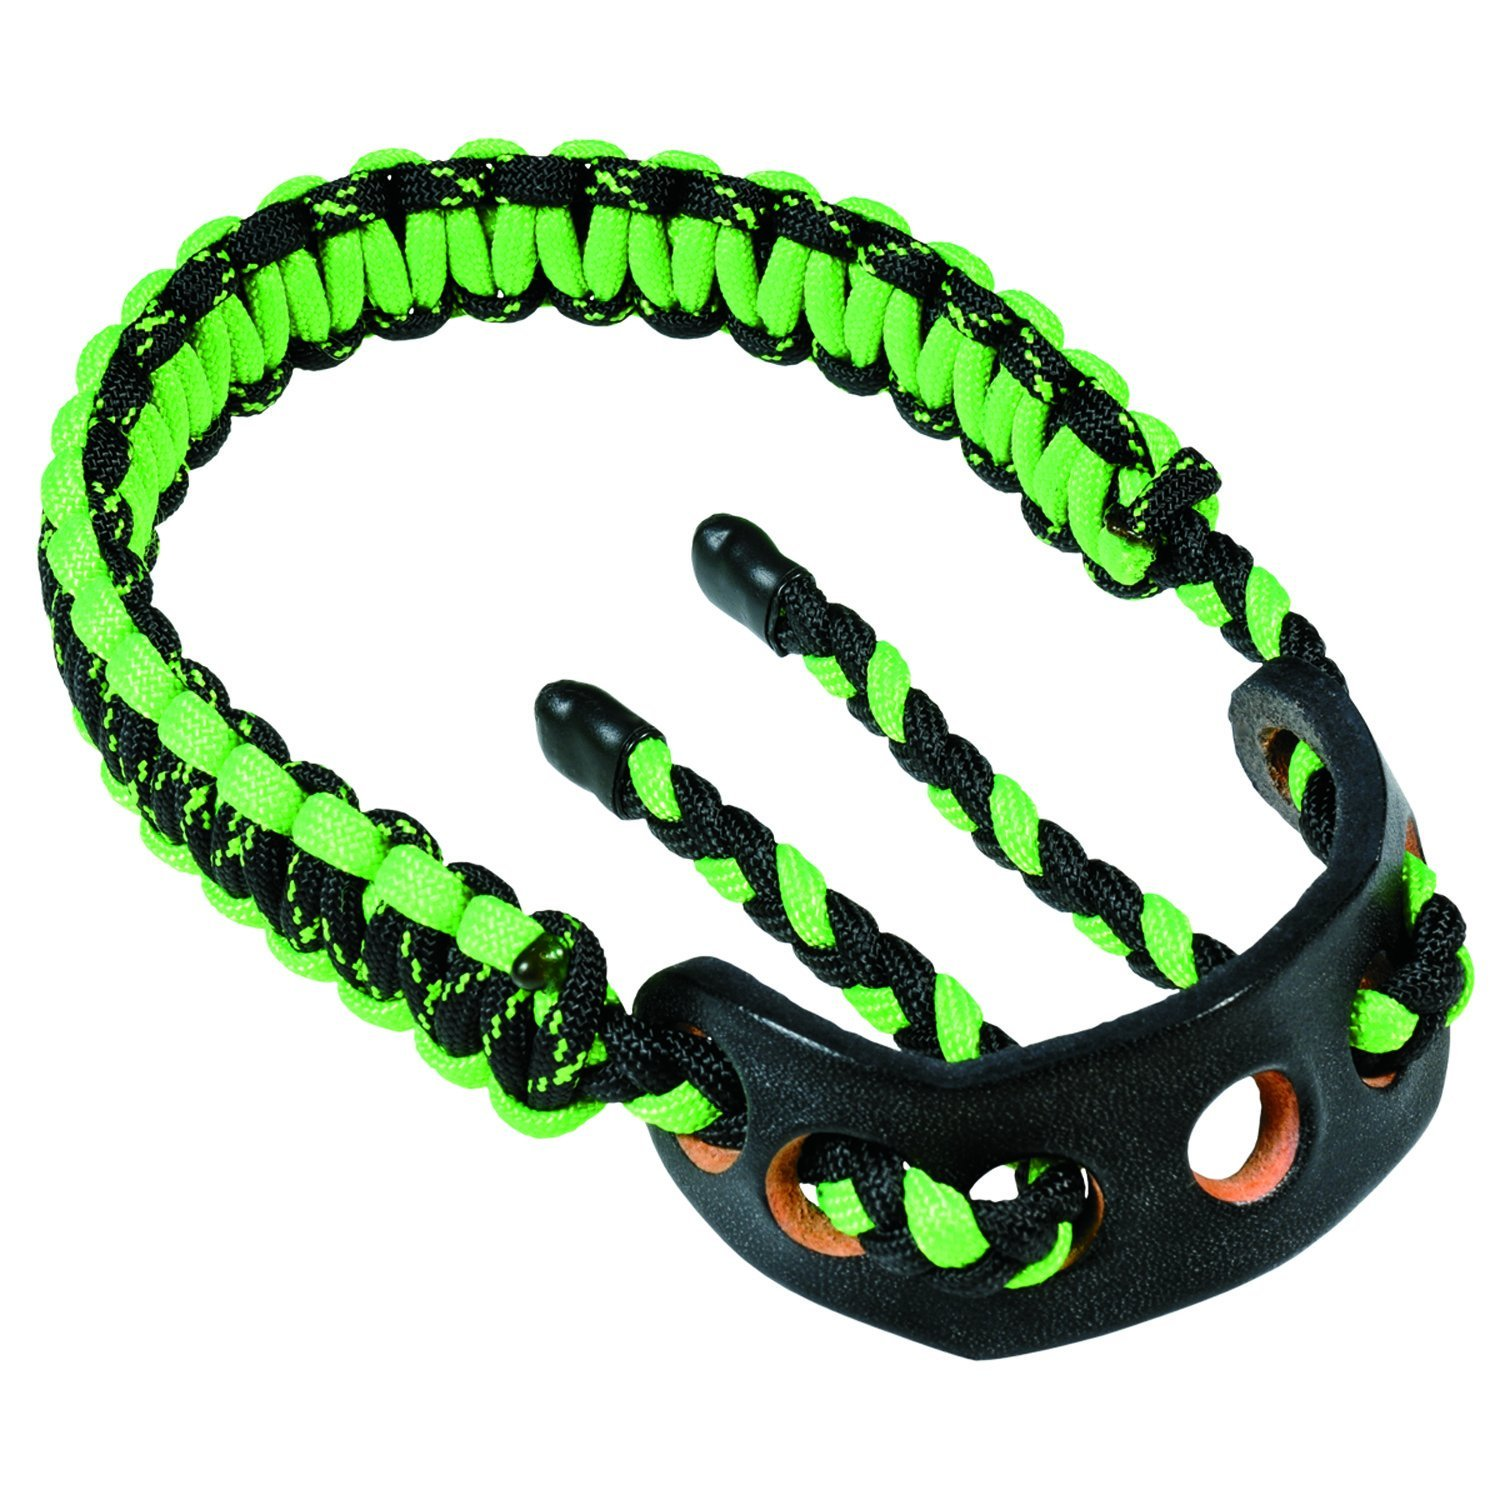 Paradox Products Bow Sling Elite Custom Cobra Black/Neon Green 62001